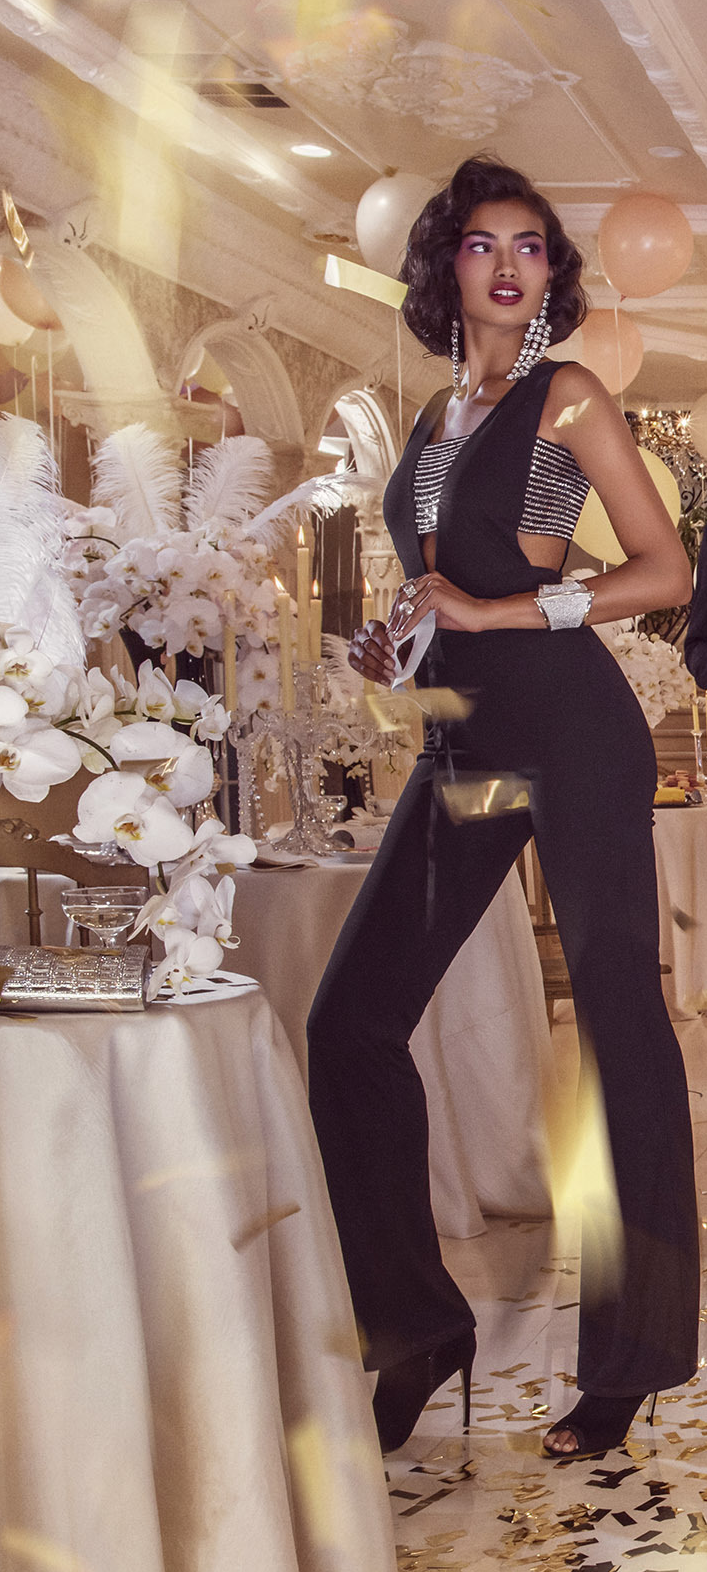 Bebe holiday new yearus eve pinterest bebe holidays and